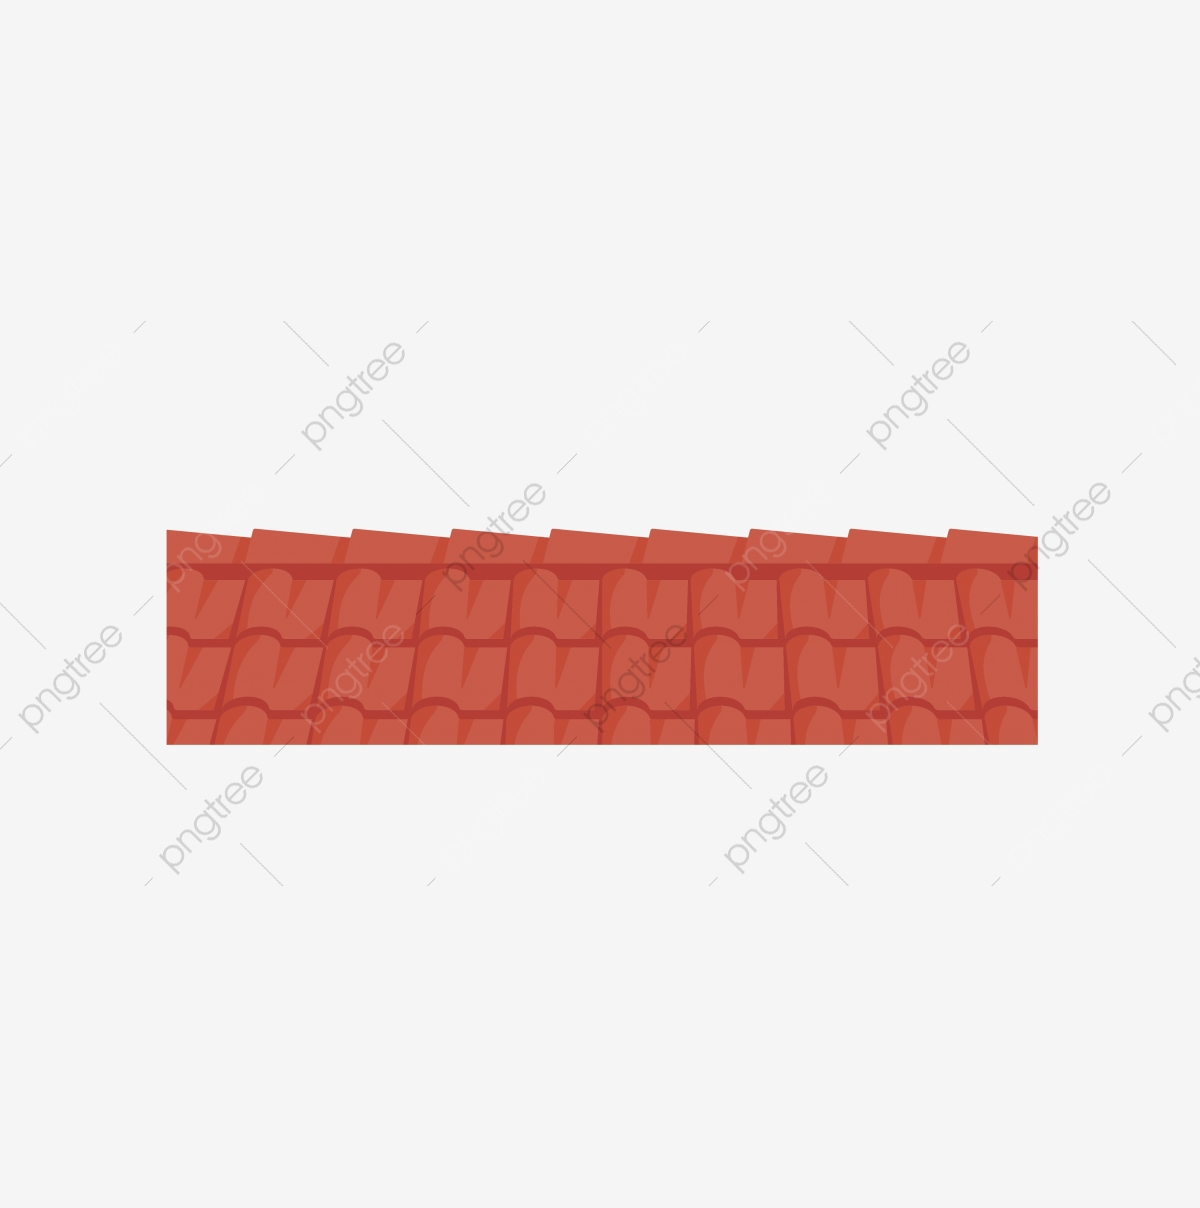 Eaves Roof Brick House Tile Tile Roof Brick Png And Vector With Transparent Background For Free Download